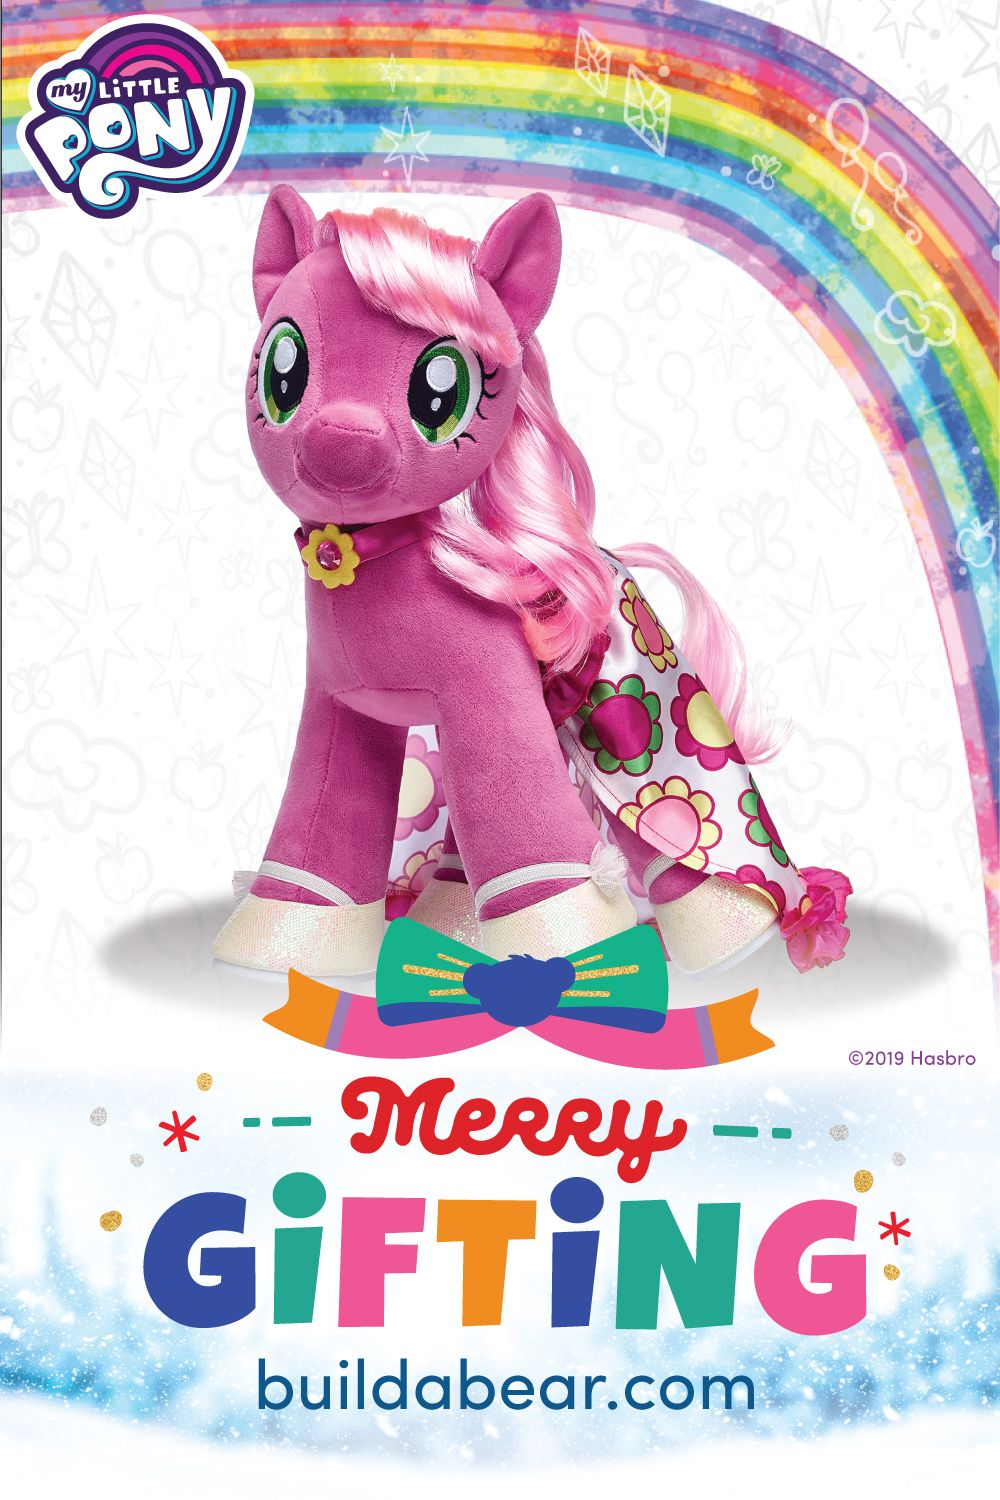 My Little Pony the Movie Small Notebook Ponies Stick Together Always